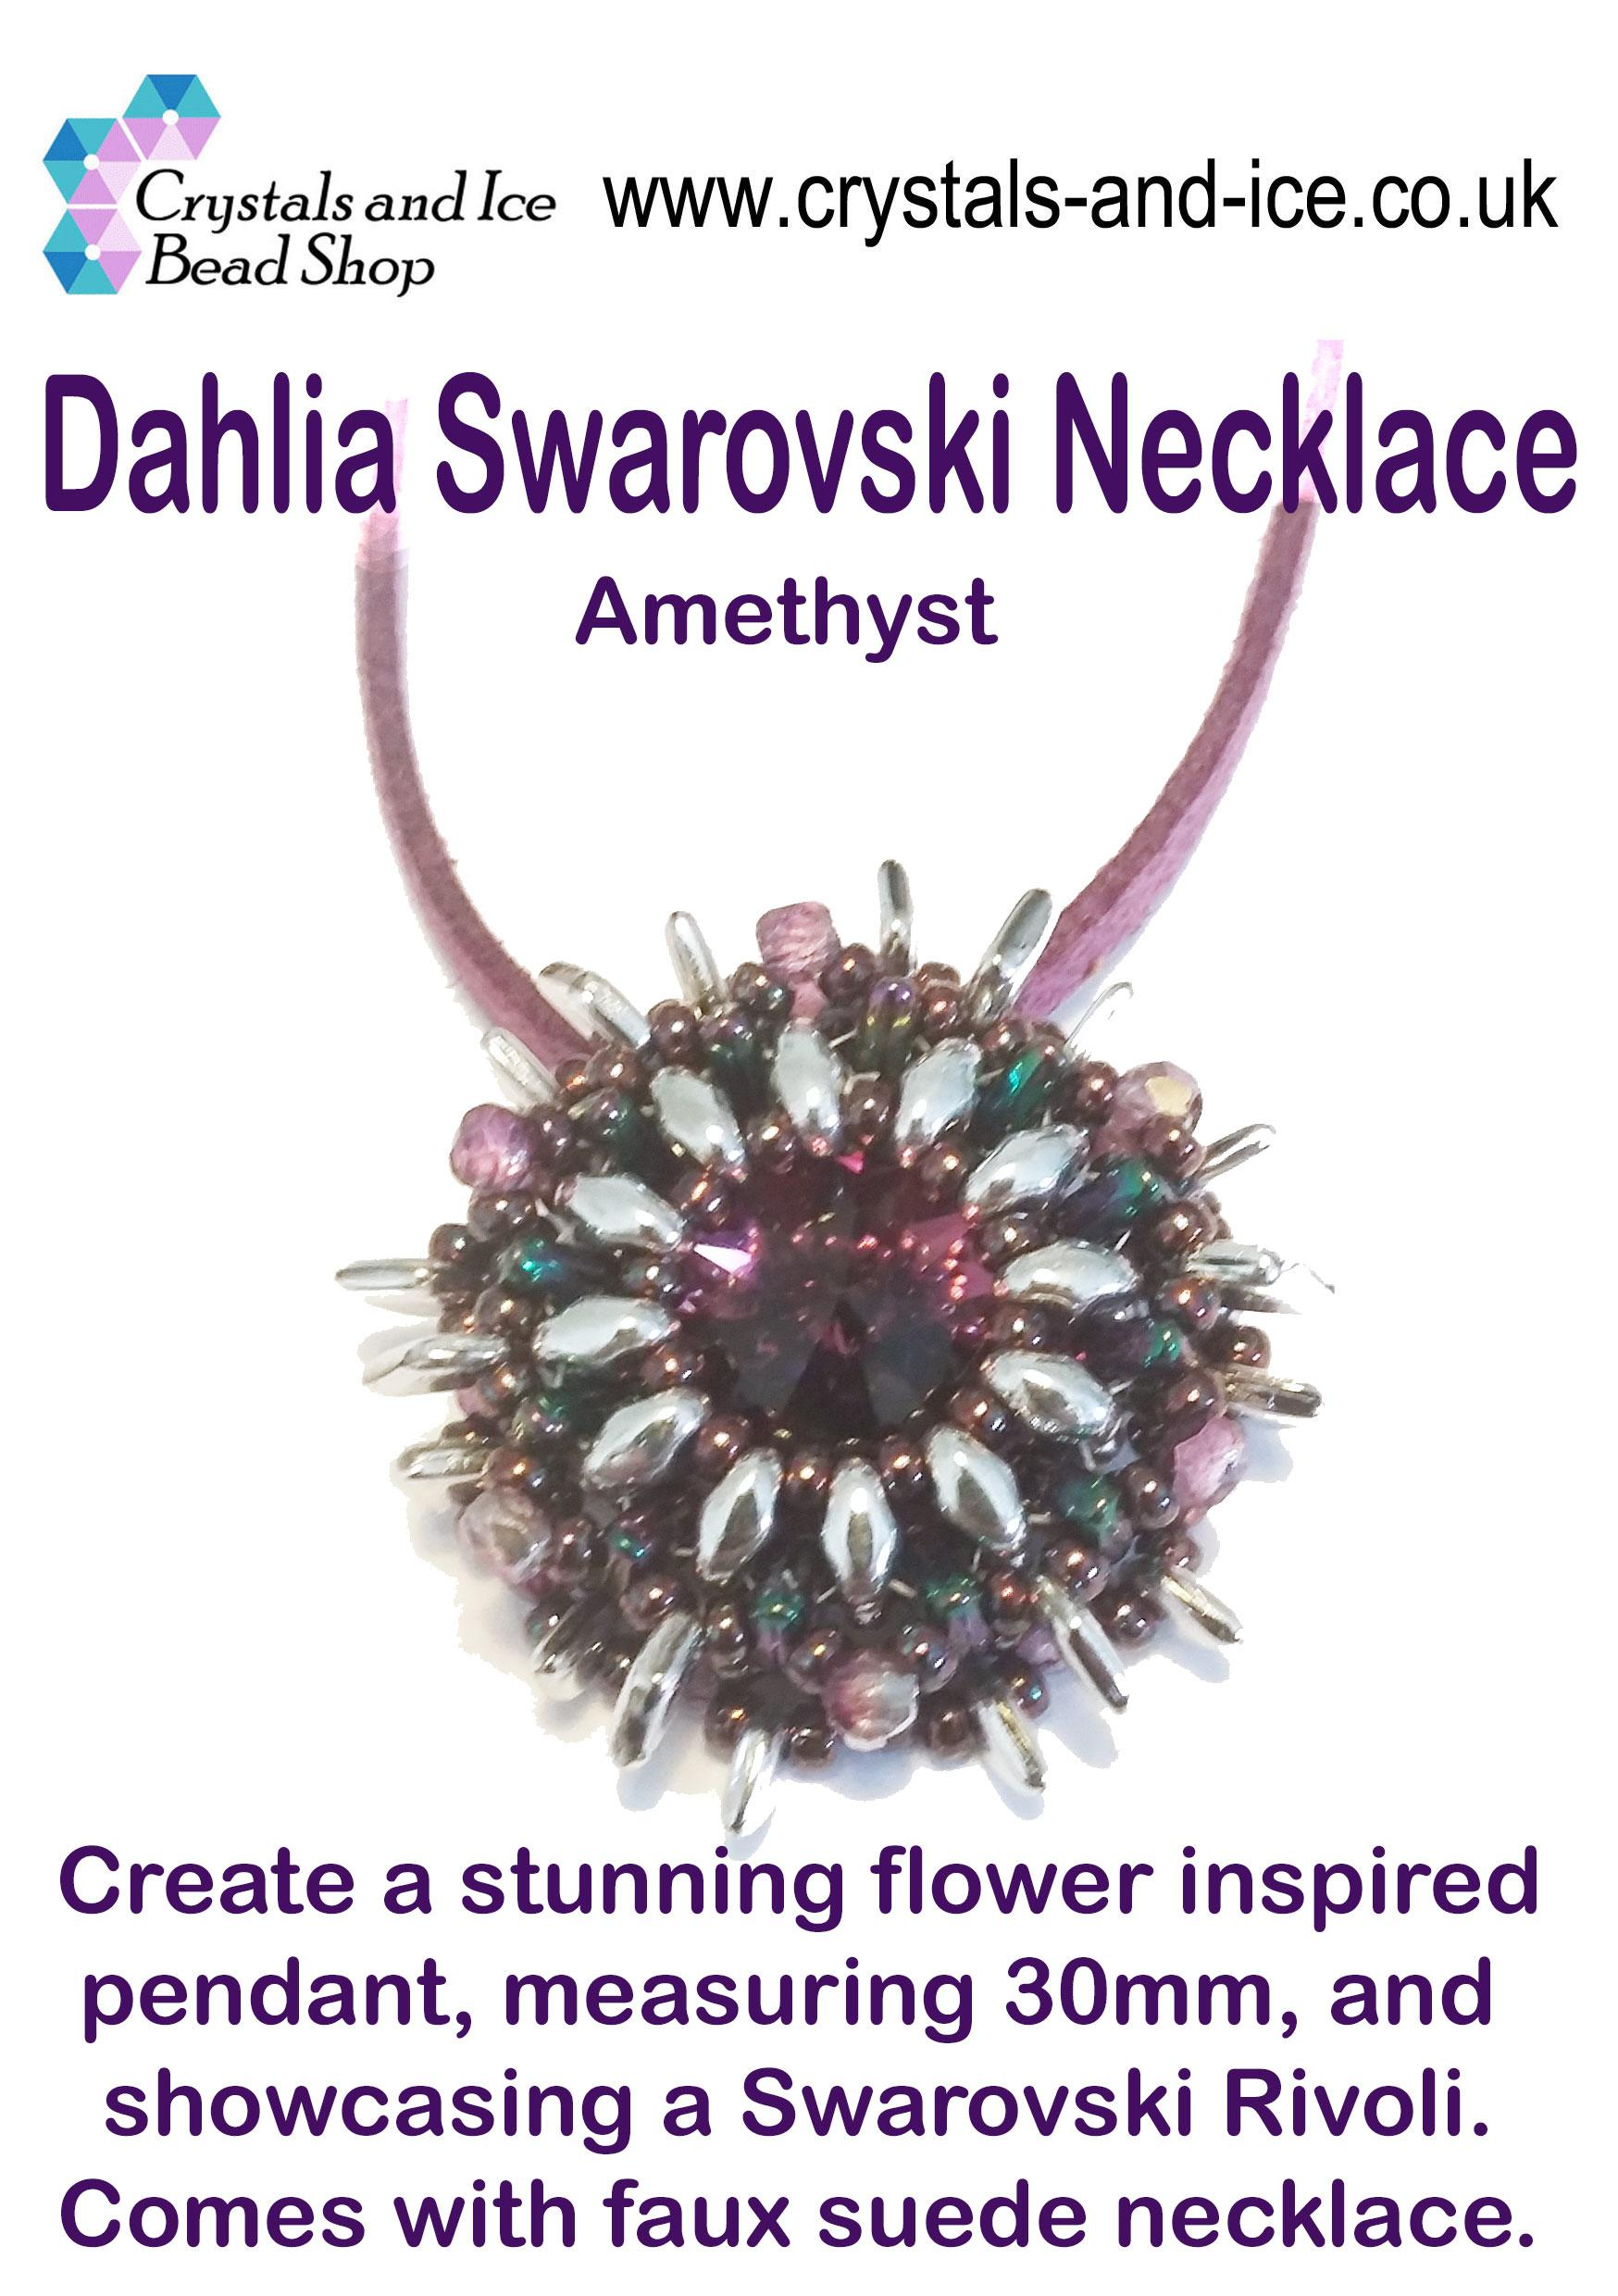 Dahlia Swarovski Necklace Kit - Amethyst